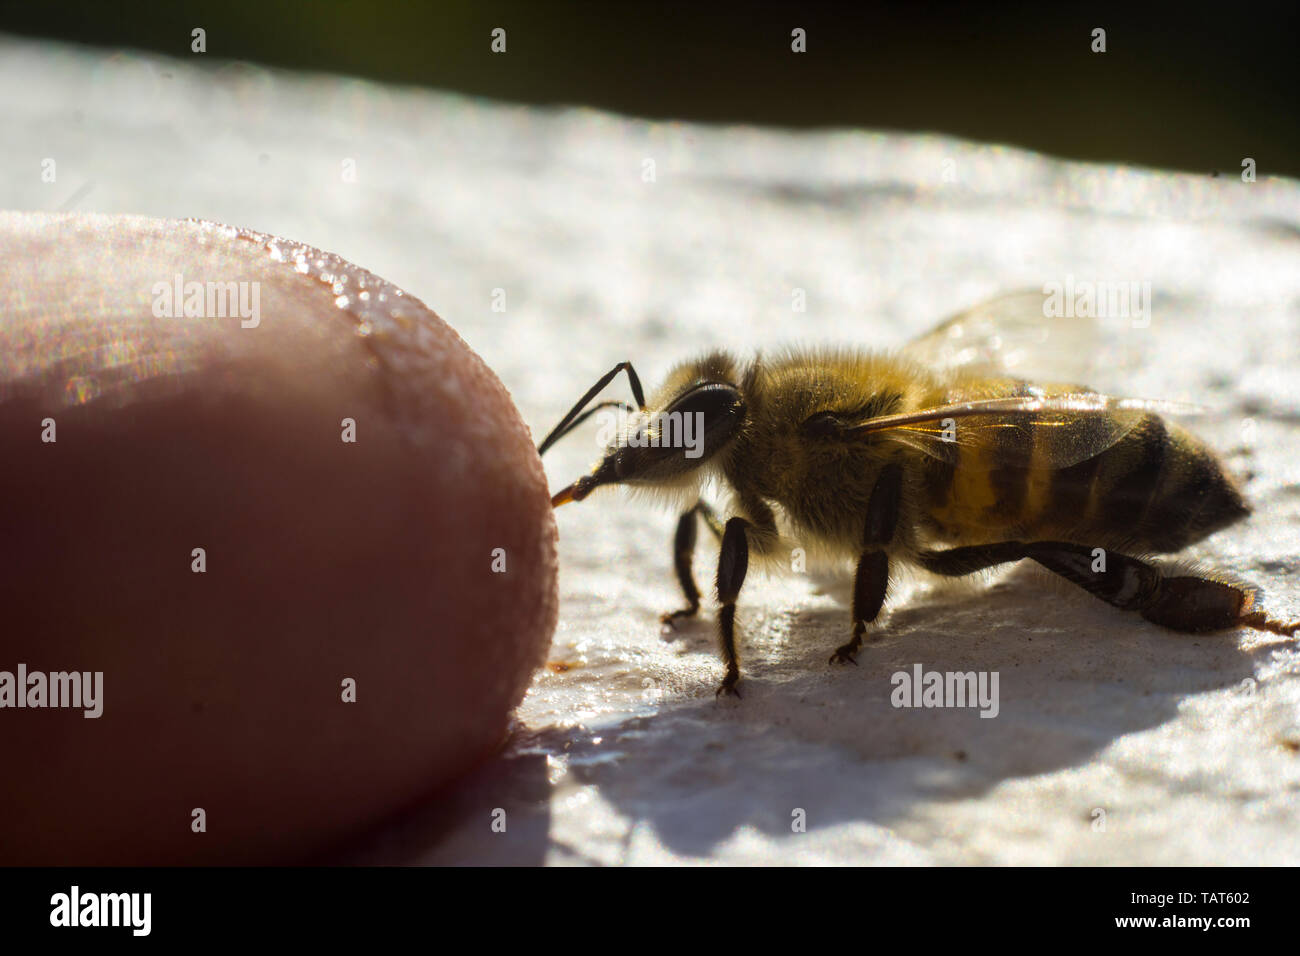 A friendly bee licking coffee a human finger. - Stock Image